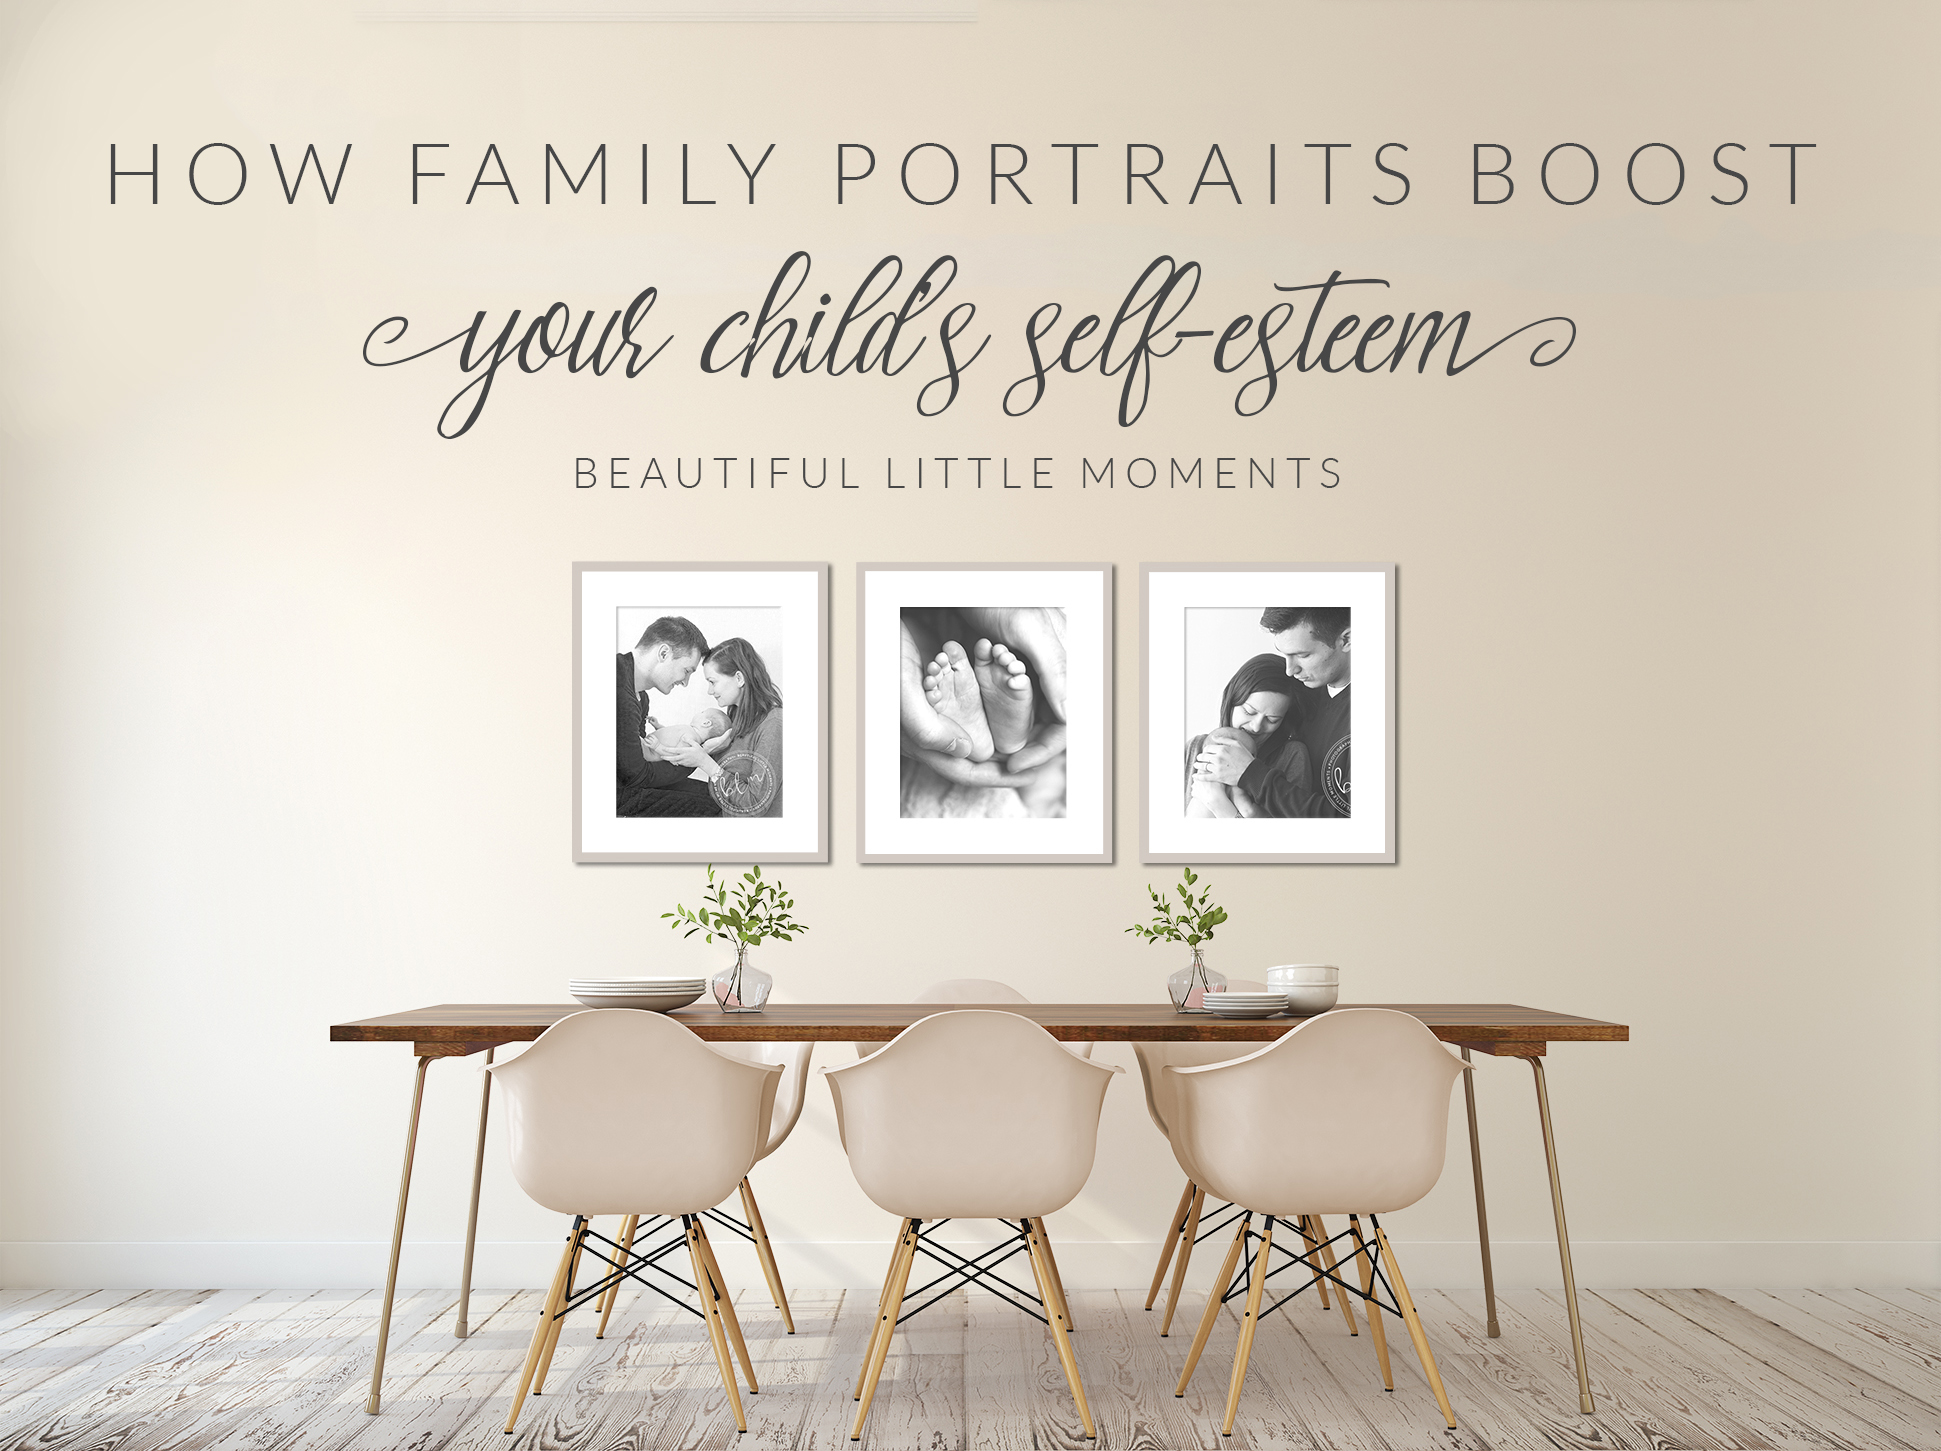 beautifullittlemoments-family-portrait-BOOST-SELF-ESTEEM